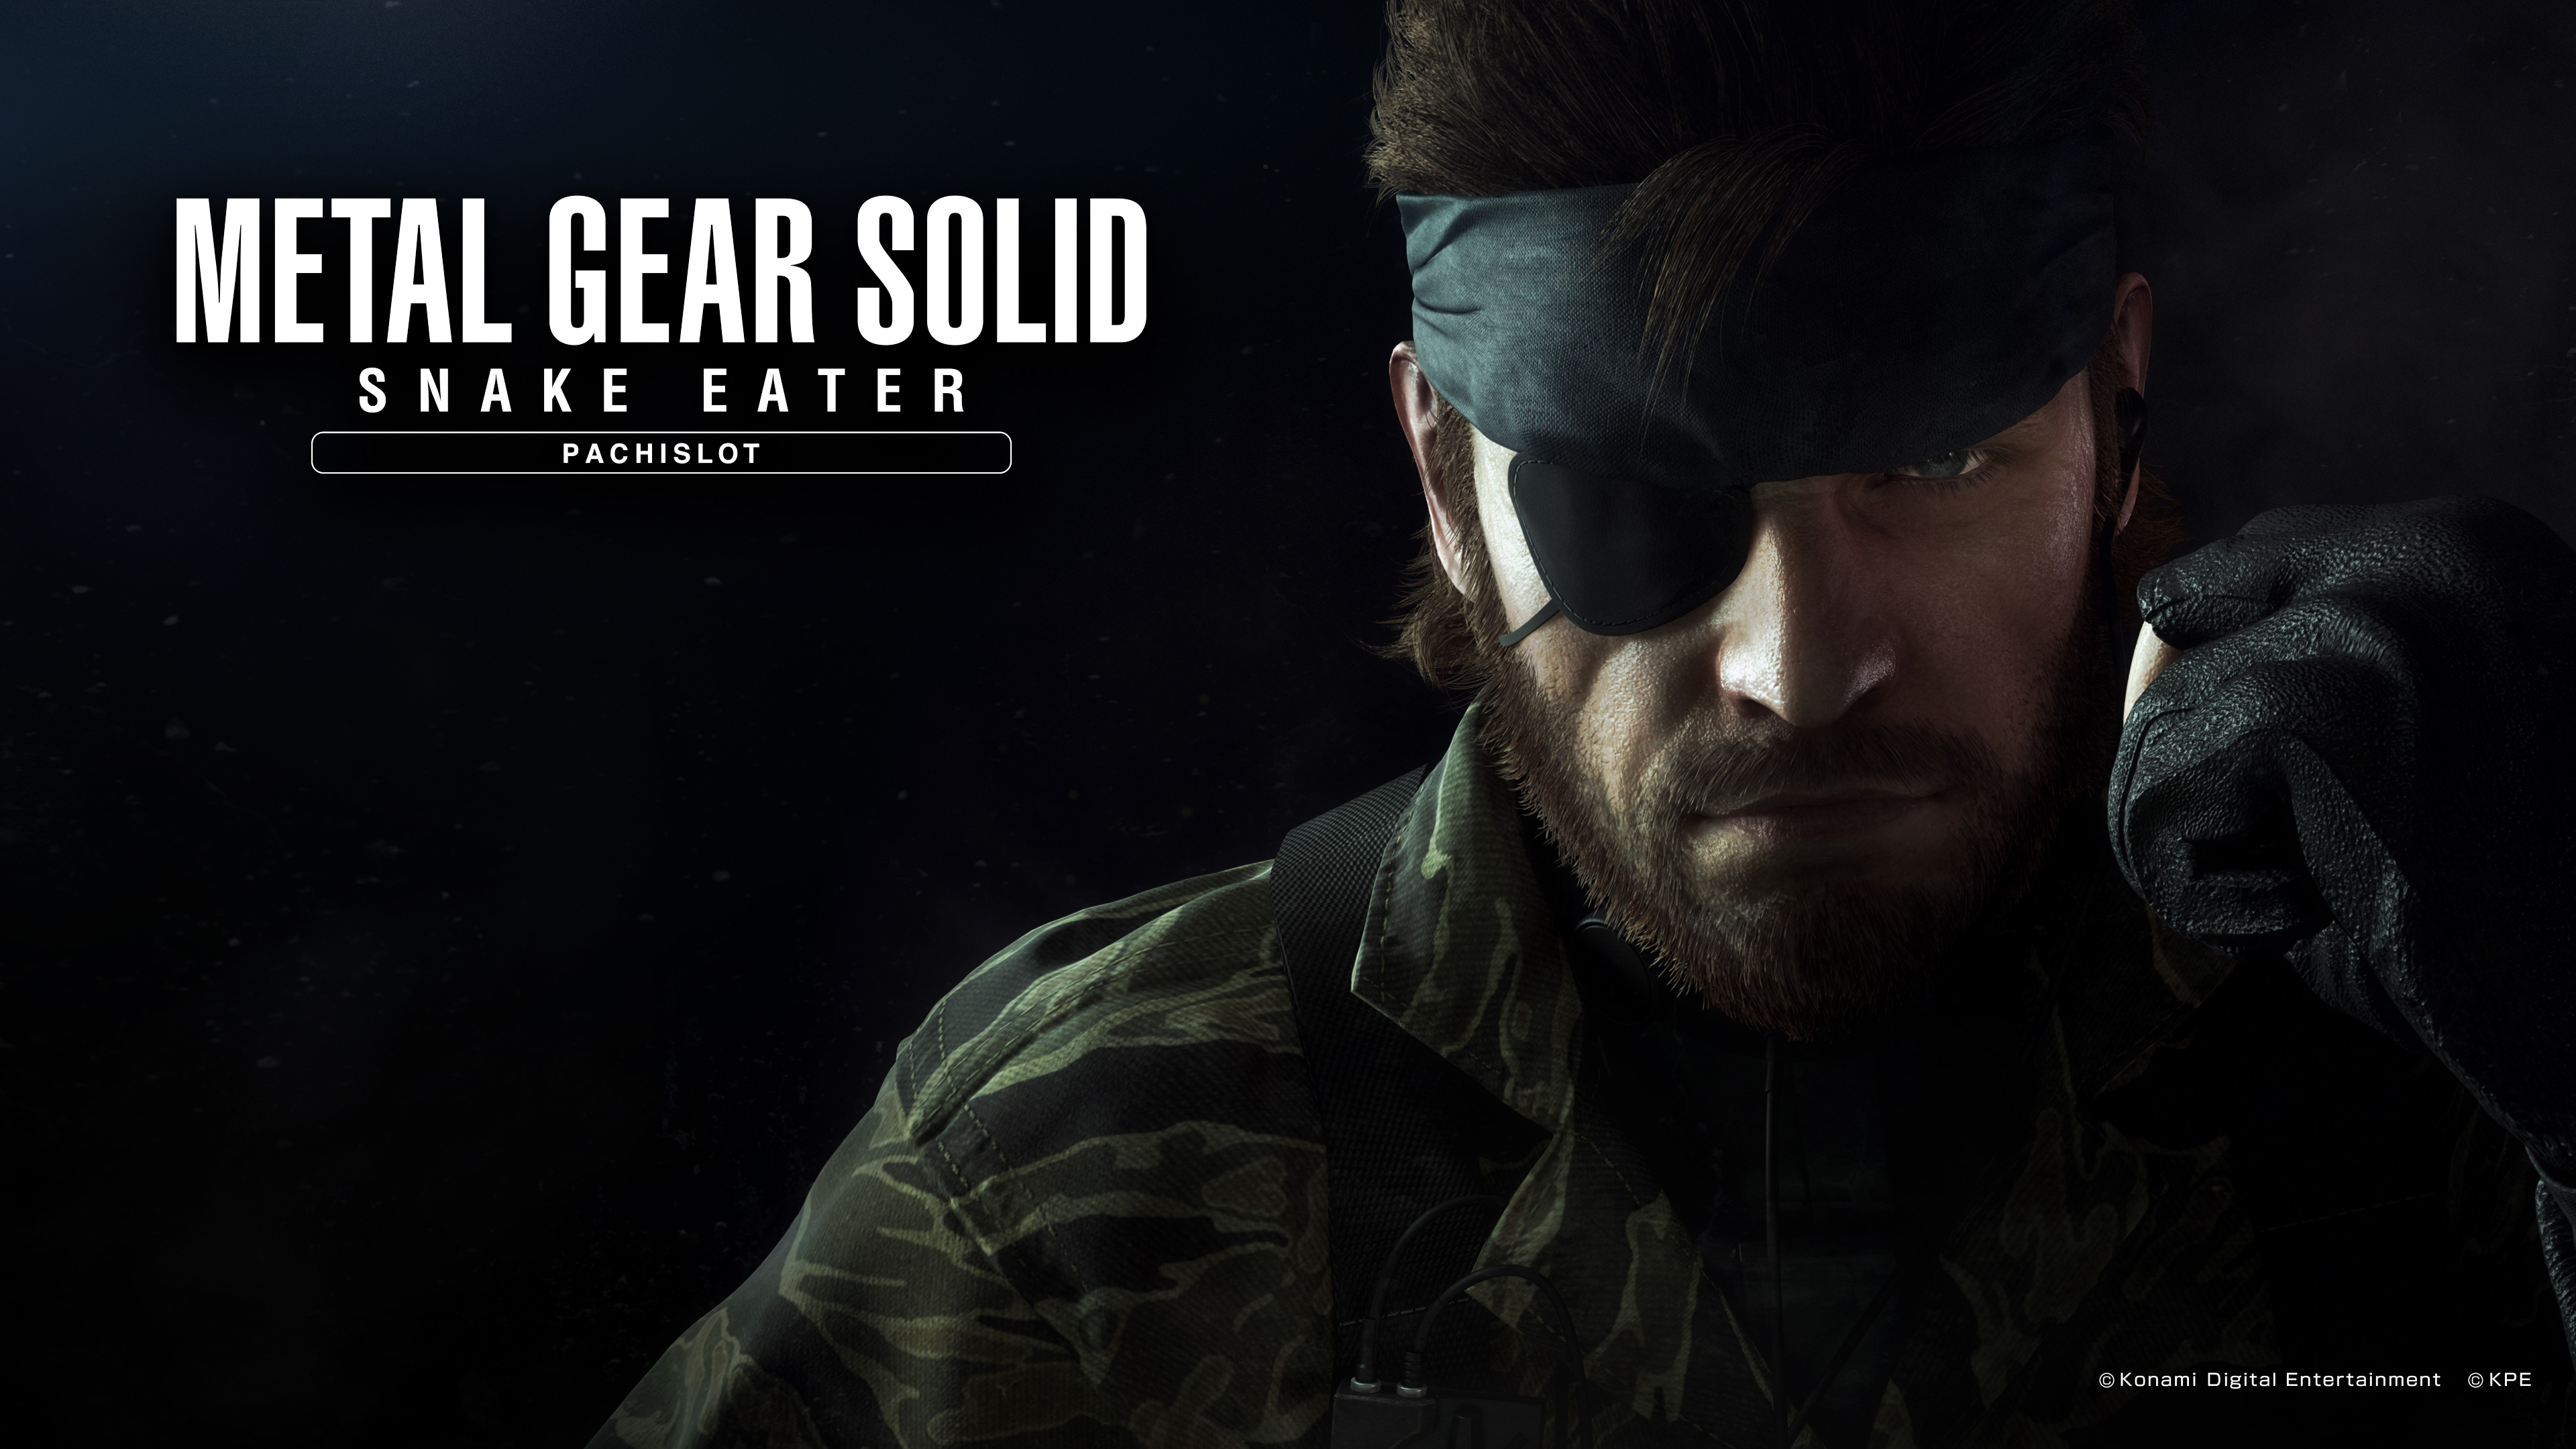 MGS Snake Eater Pachislot Wallpaper PC 1